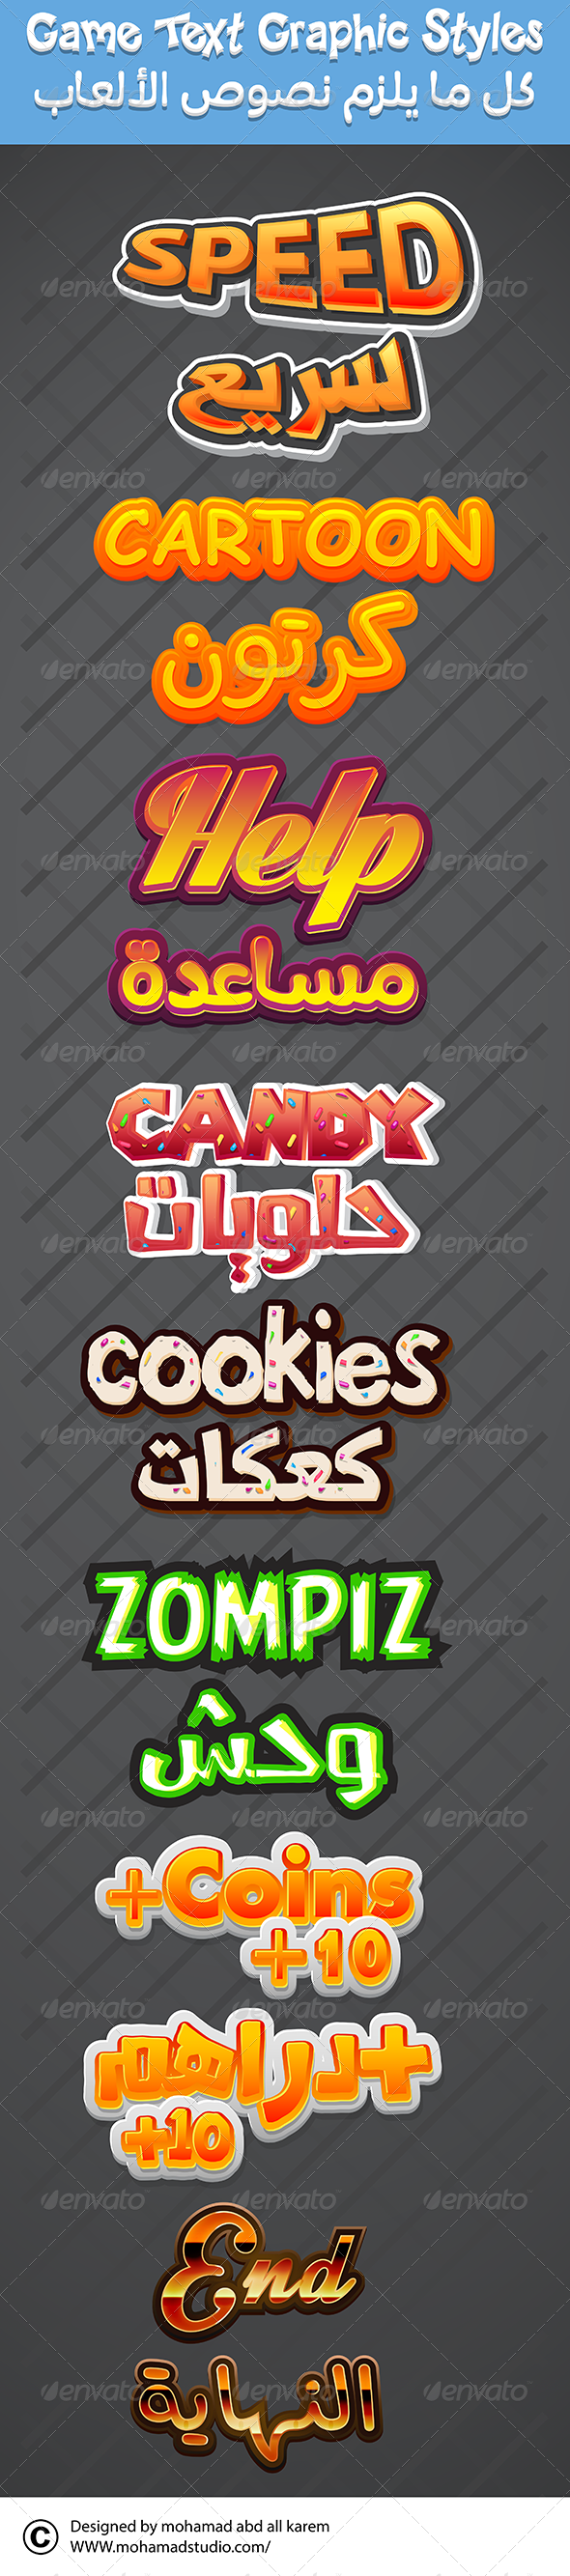 GraphicRiver Game text graphic style 7721715